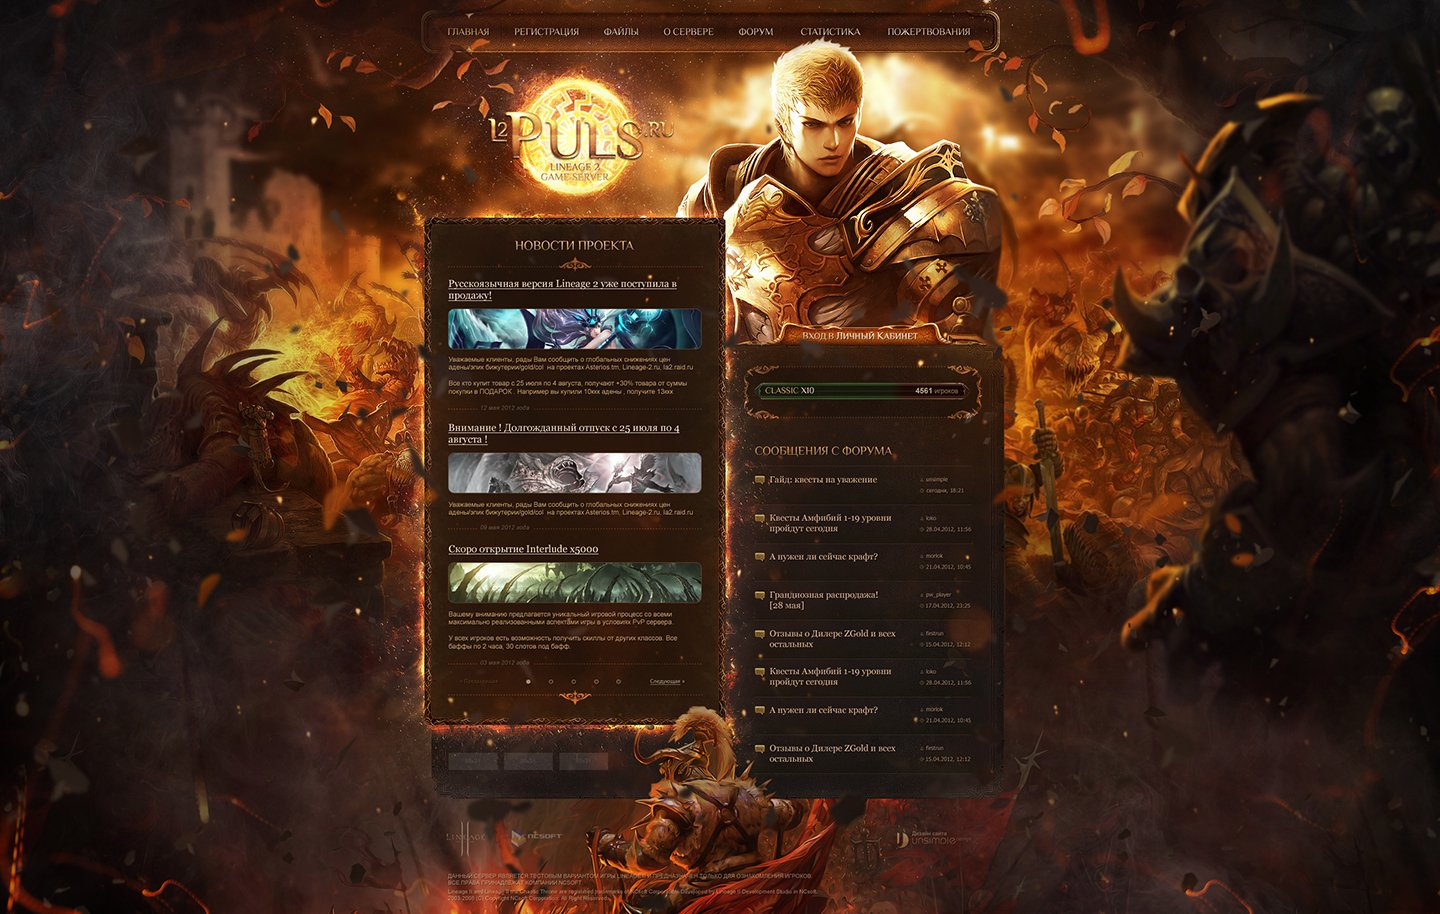 L2Puls > Website design and promo page for Lineage 2 private server. Main page